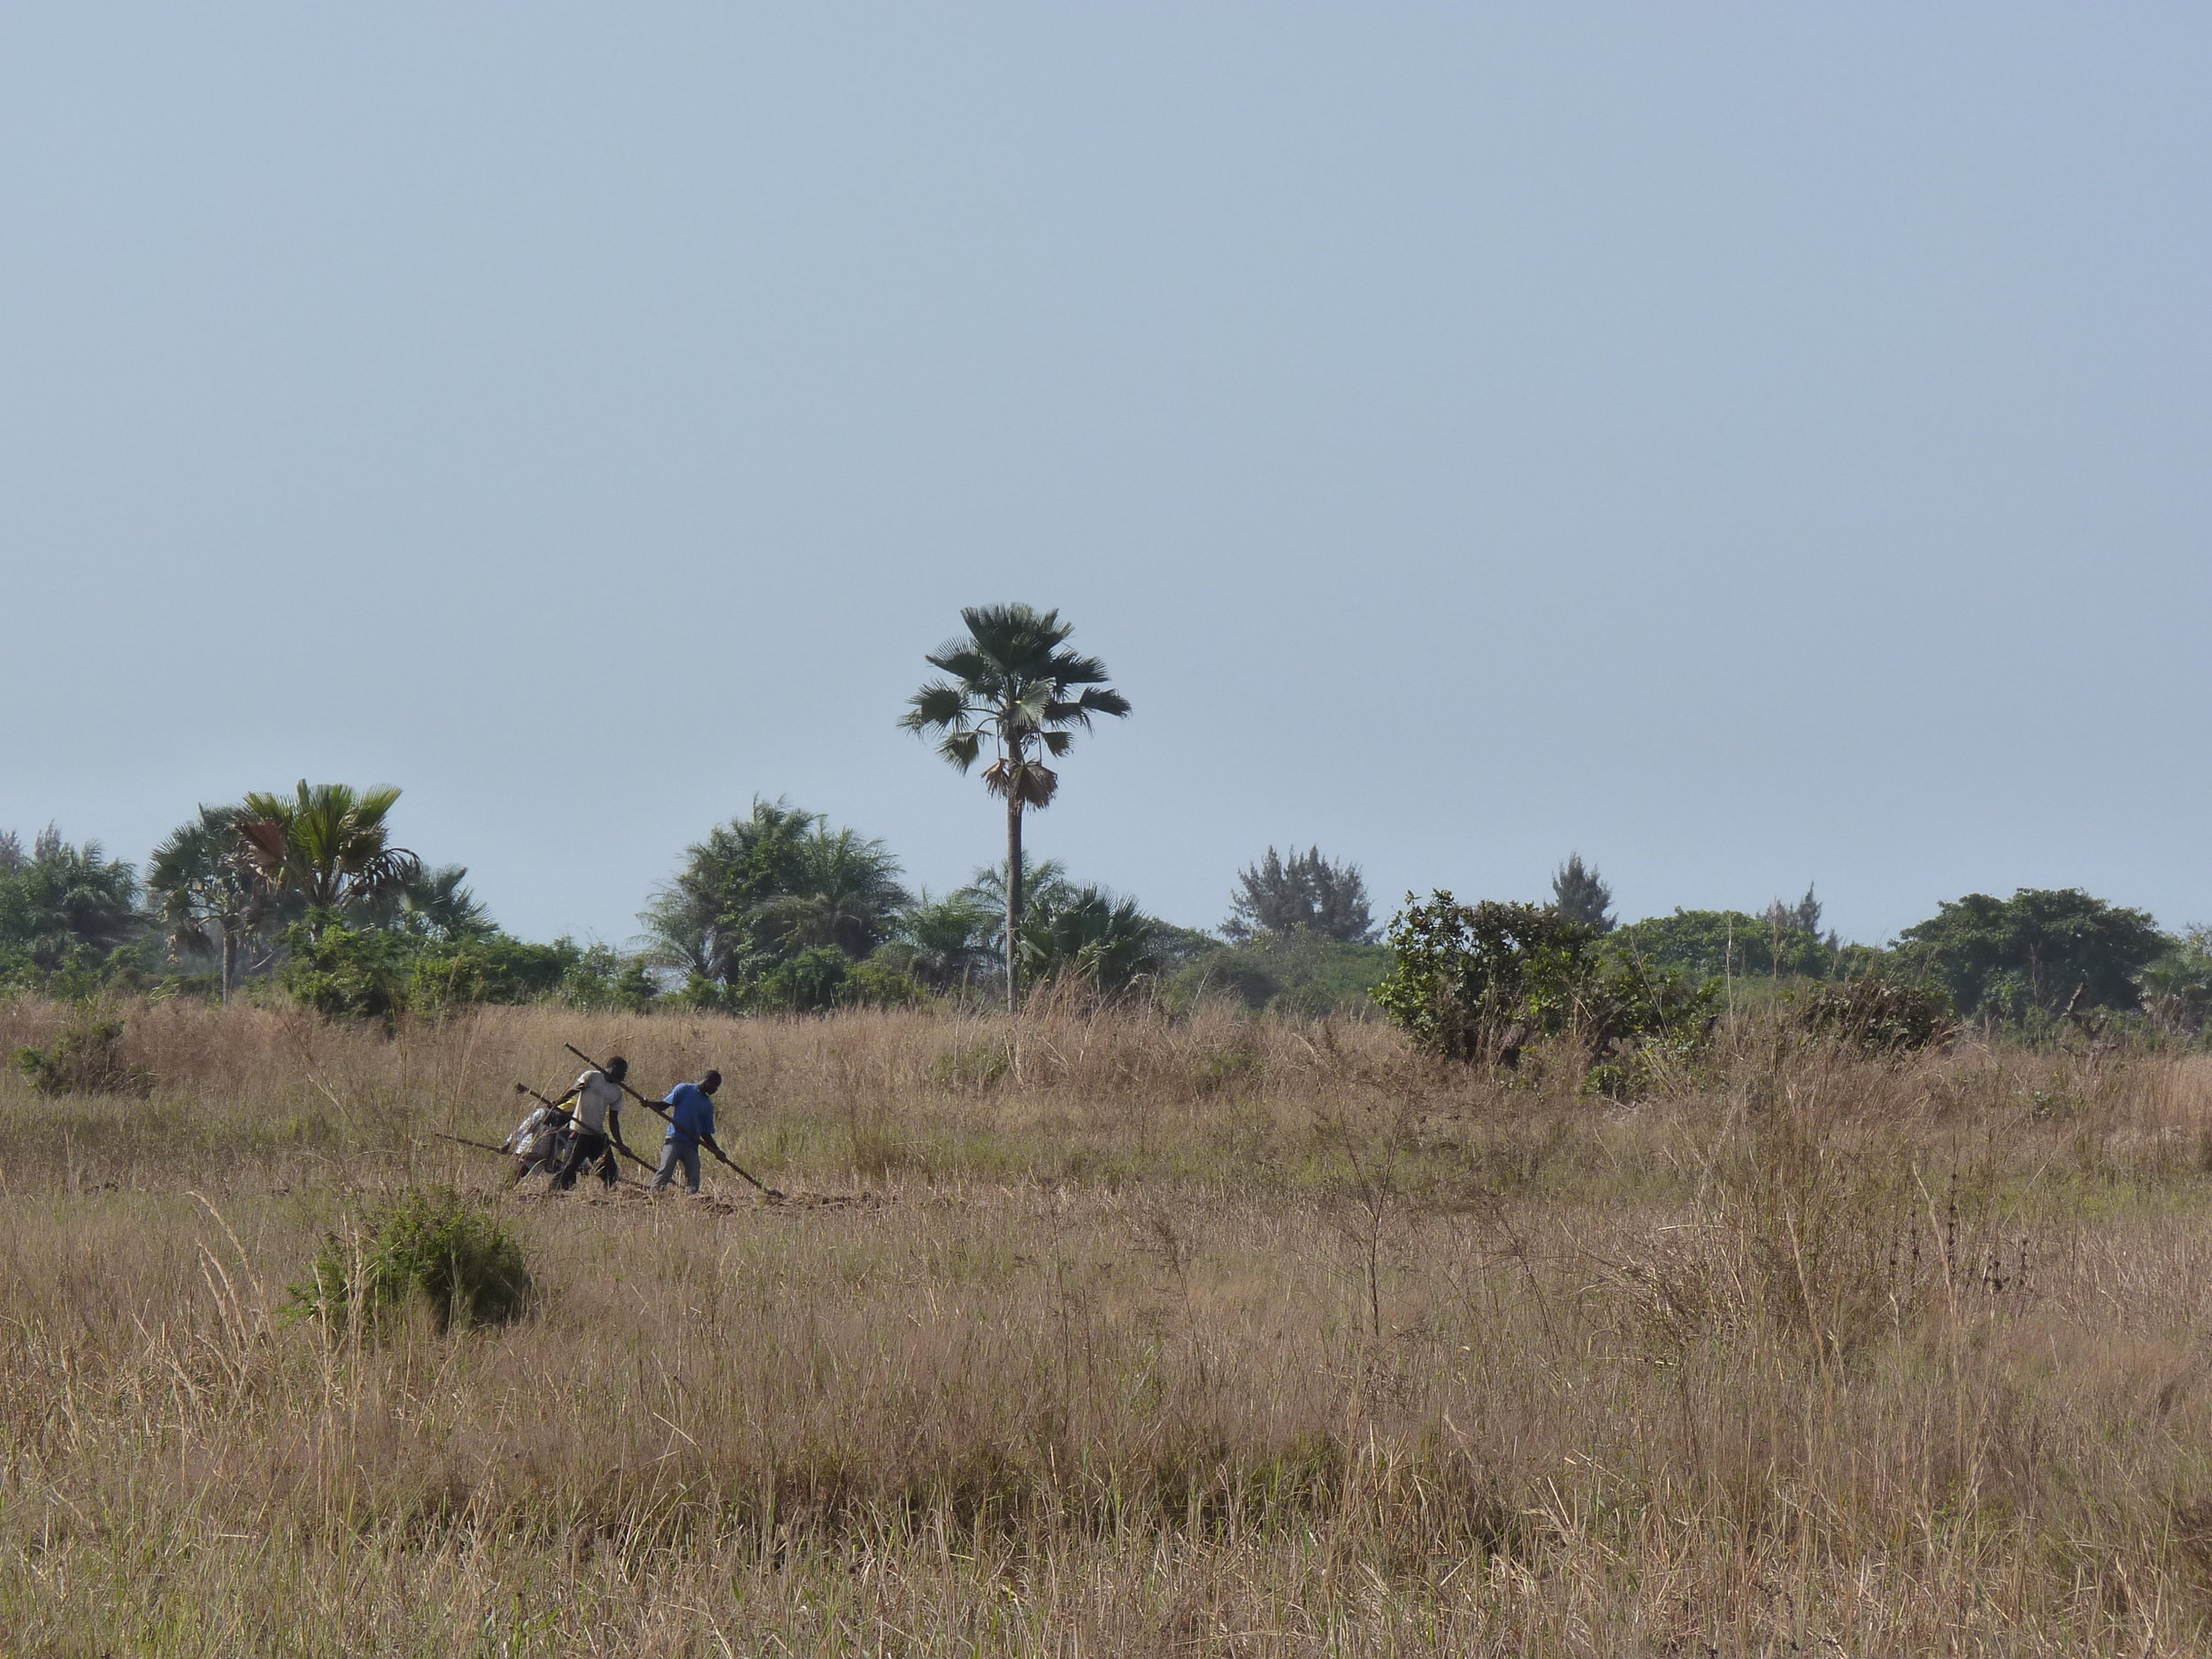 Farmers working the fields in the Casamance